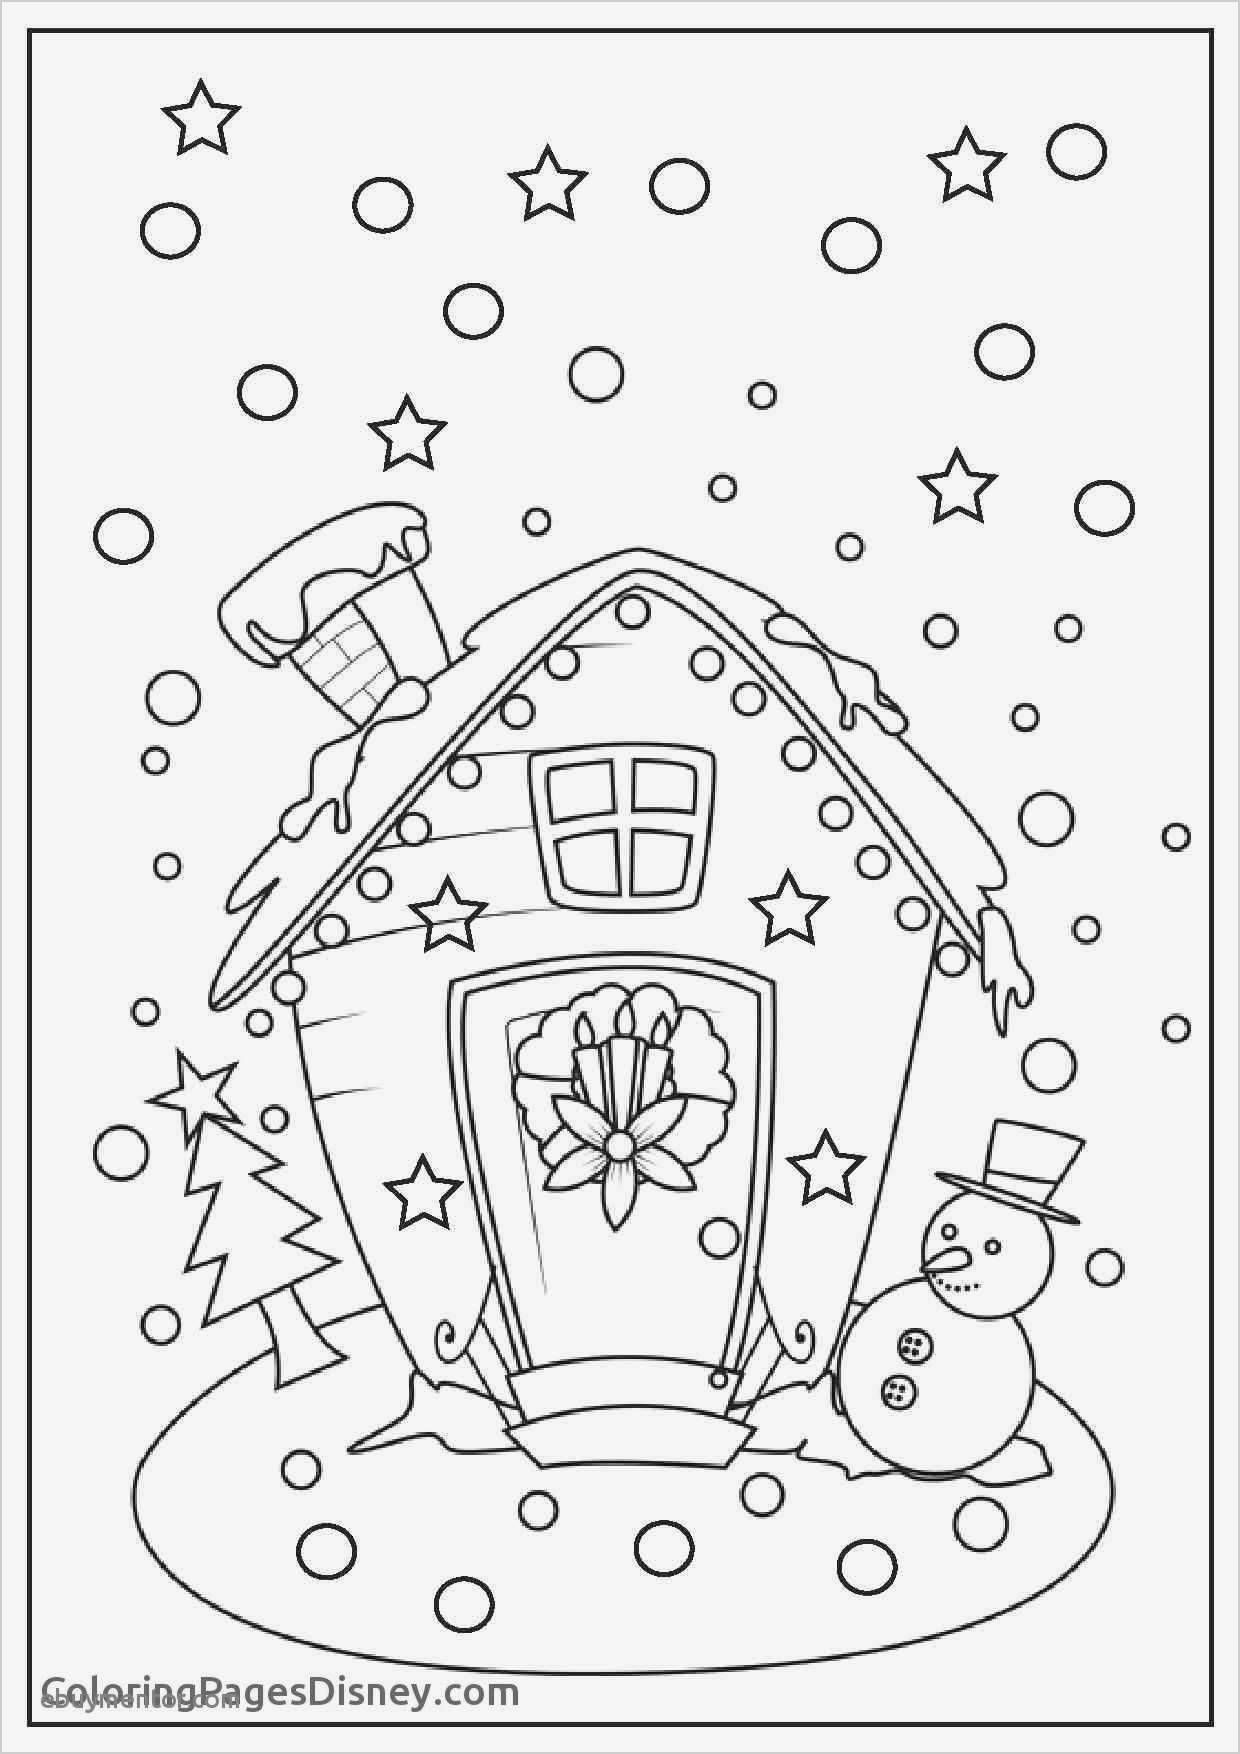 10 Colouring Pages Descendants Colouring Pages For Kids Colouring Printable Christmas Coloring Pages Free Christmas Coloring Pages Christmas Coloring Sheets